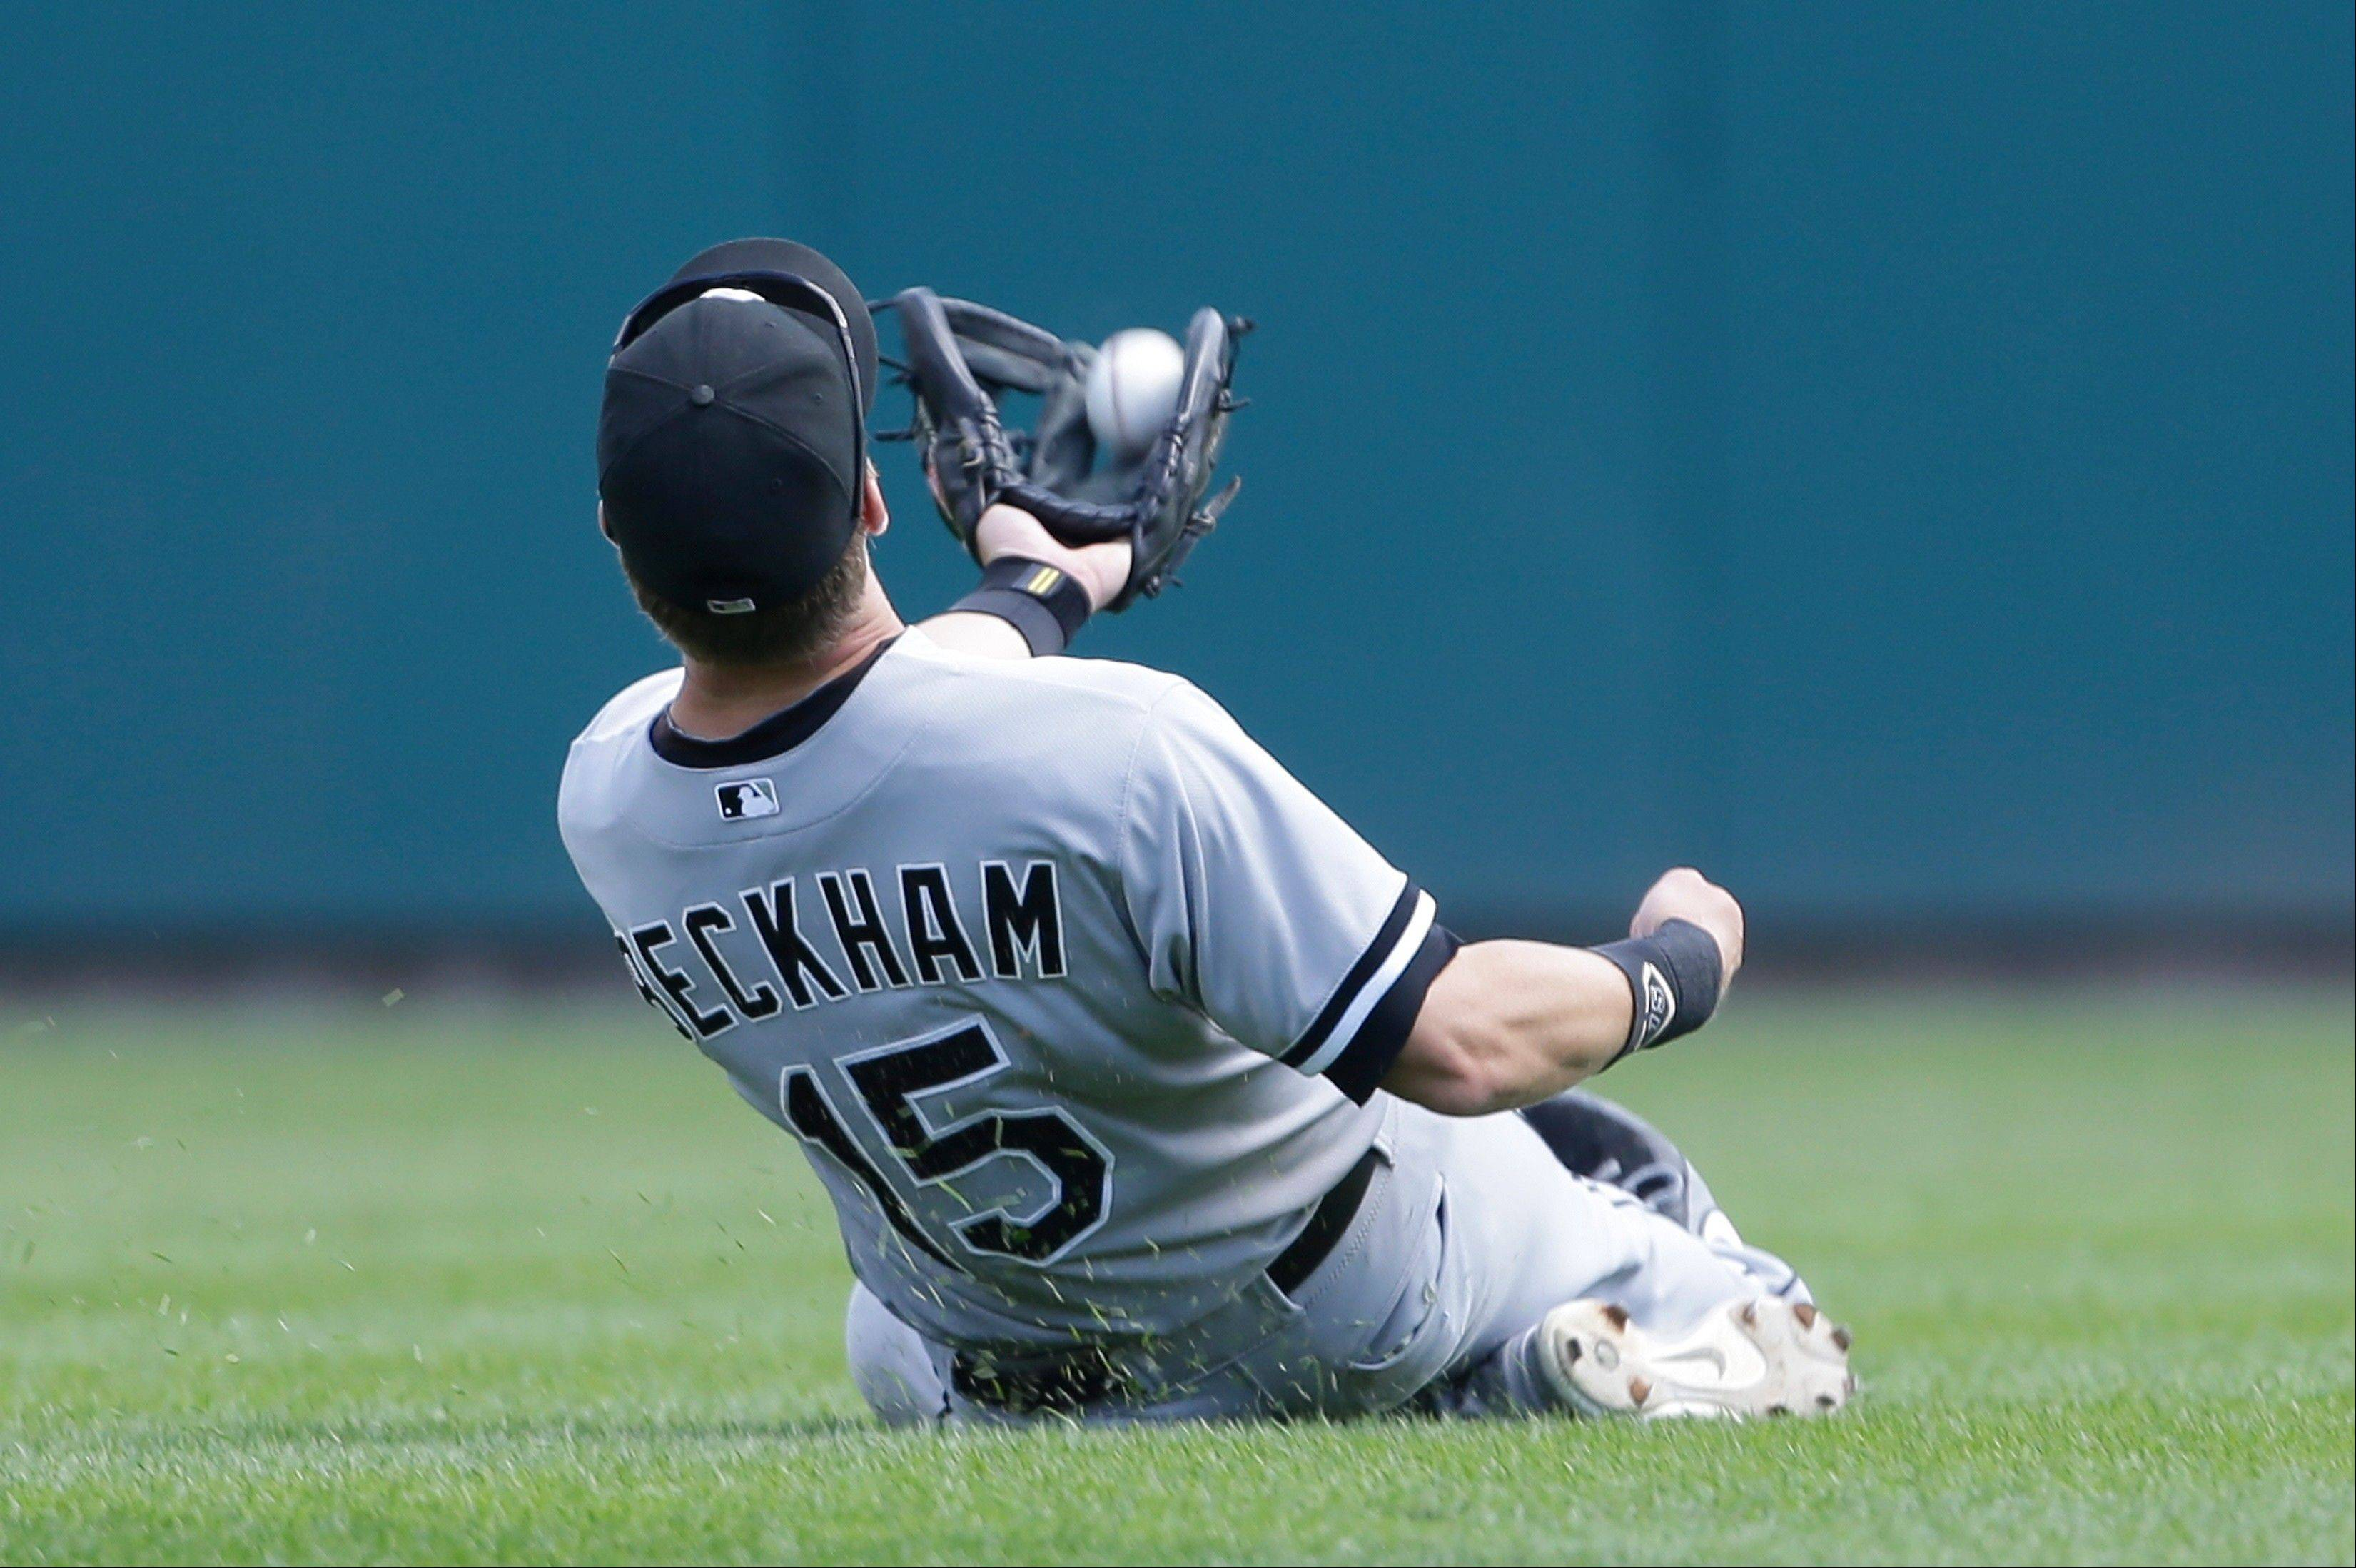 White Sox second baseman Gordon Beckham makes a sliding, over-the-shoulder catch of a Prince Fielder popup in the eighth inning of Sunday�s loss to the Tigers.